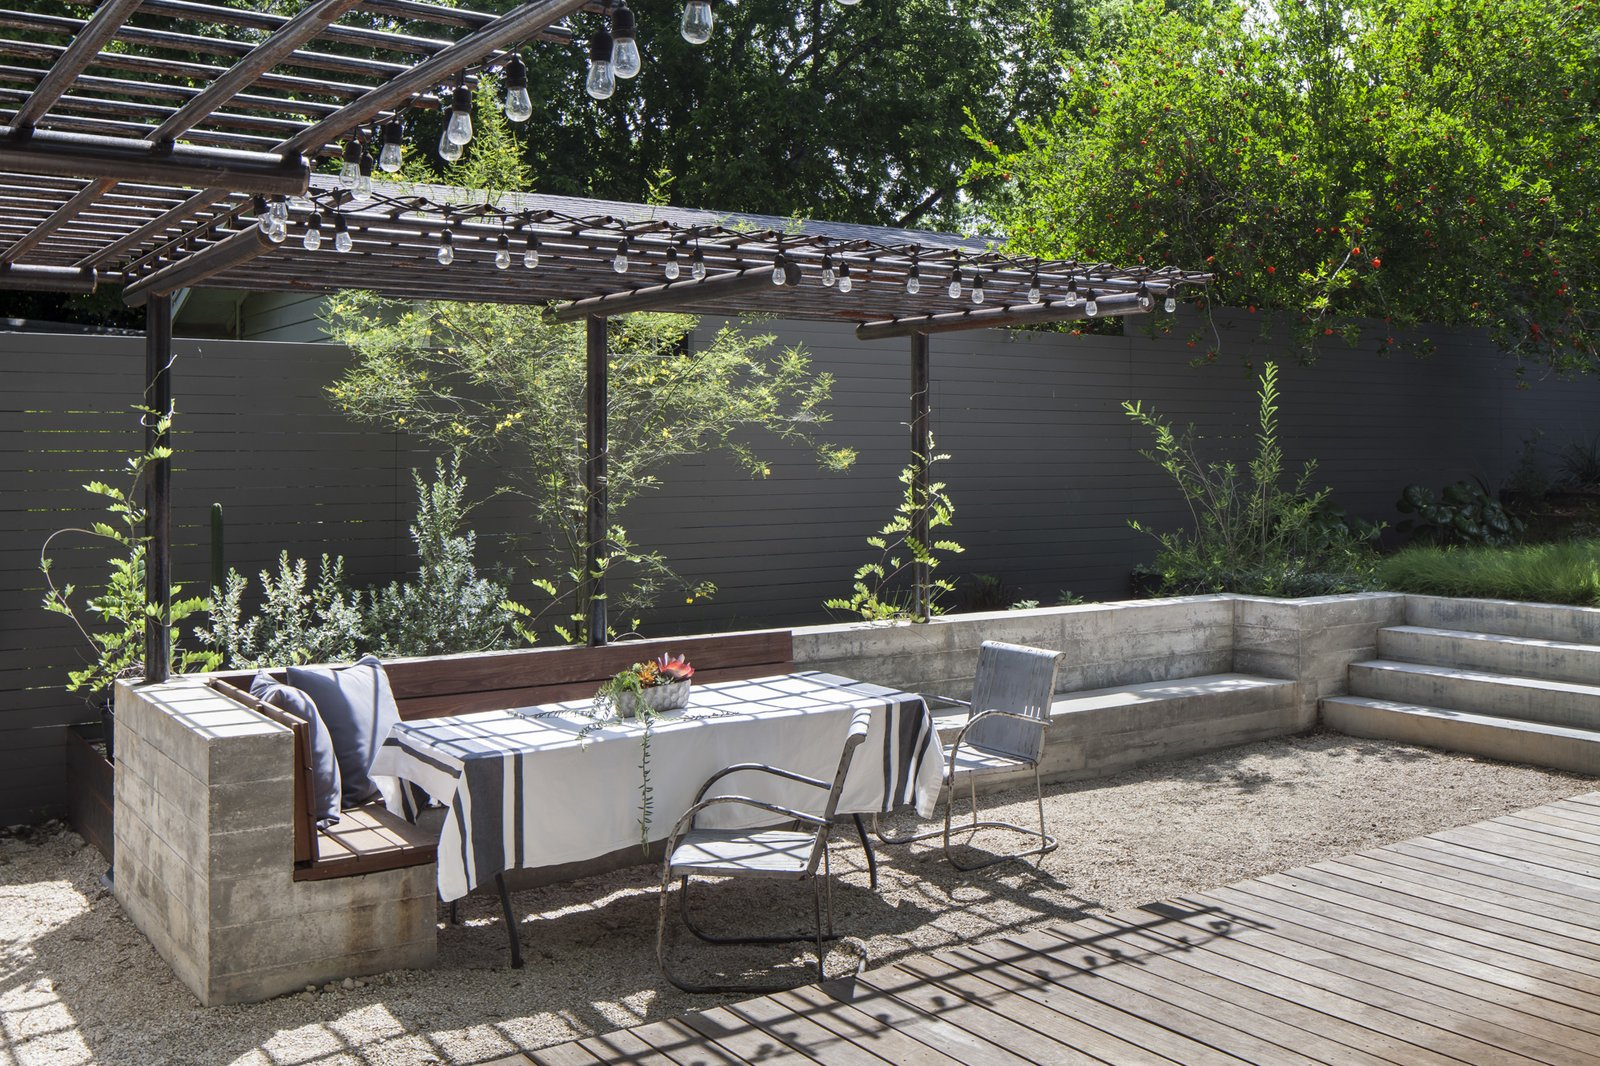 Outdoor, Wood Patio, Porch, Deck, Walkways, Grass, Trees, and Hanging Lighting New outdoor dining space is defined and by a custom concrete and wood bench with steel trellis above .  Garner Pool & Casita